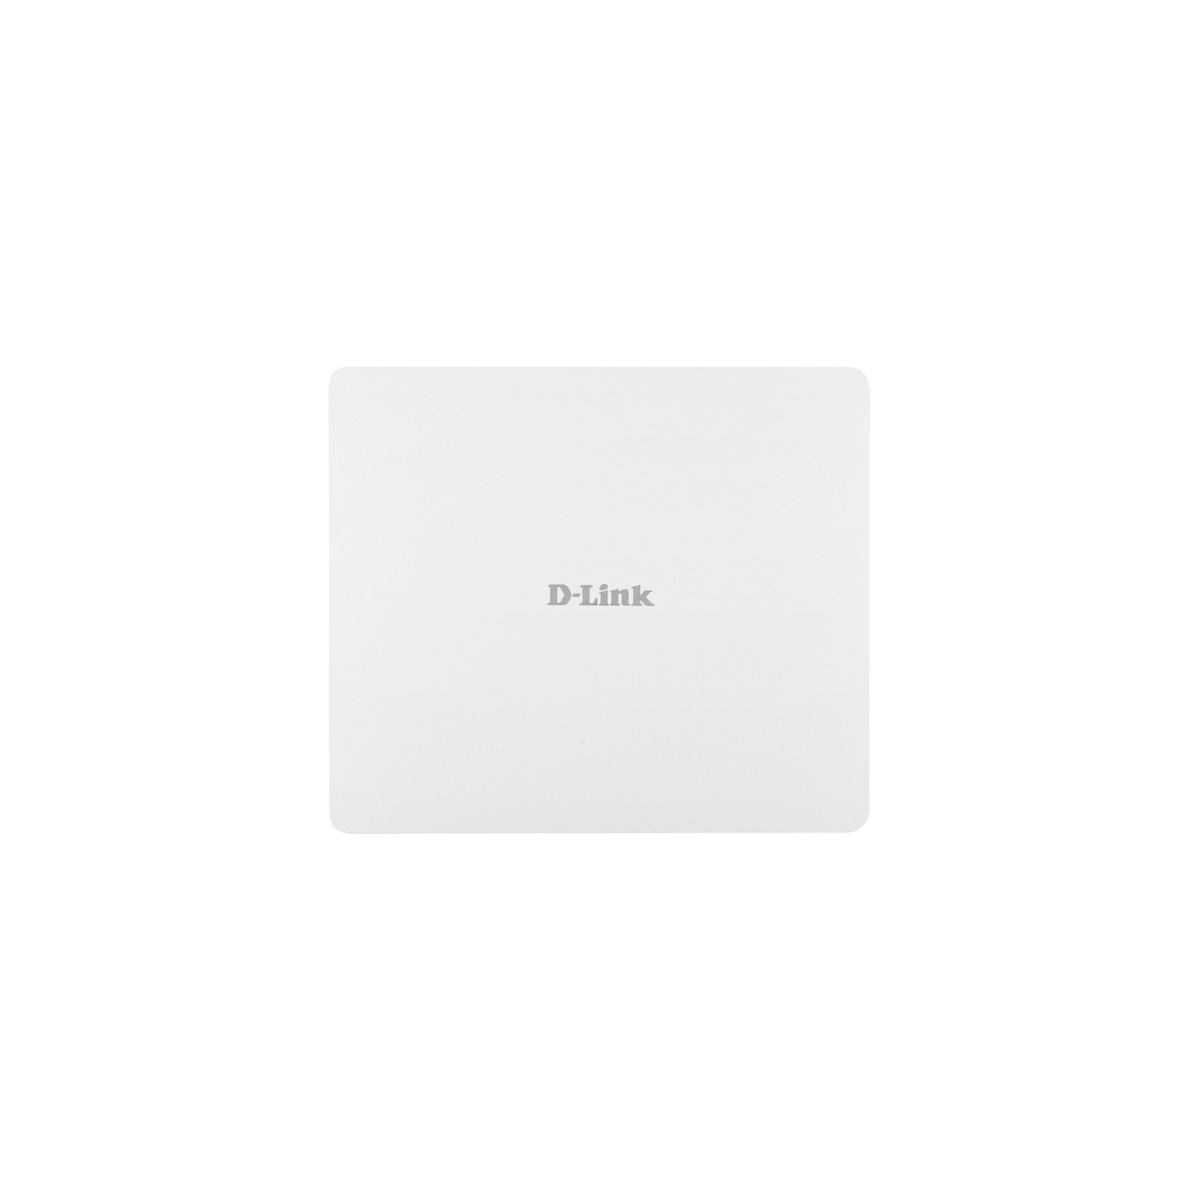 0790069443367-d-link-ac1200-bianco-supporto-power-over-ethernet-poe